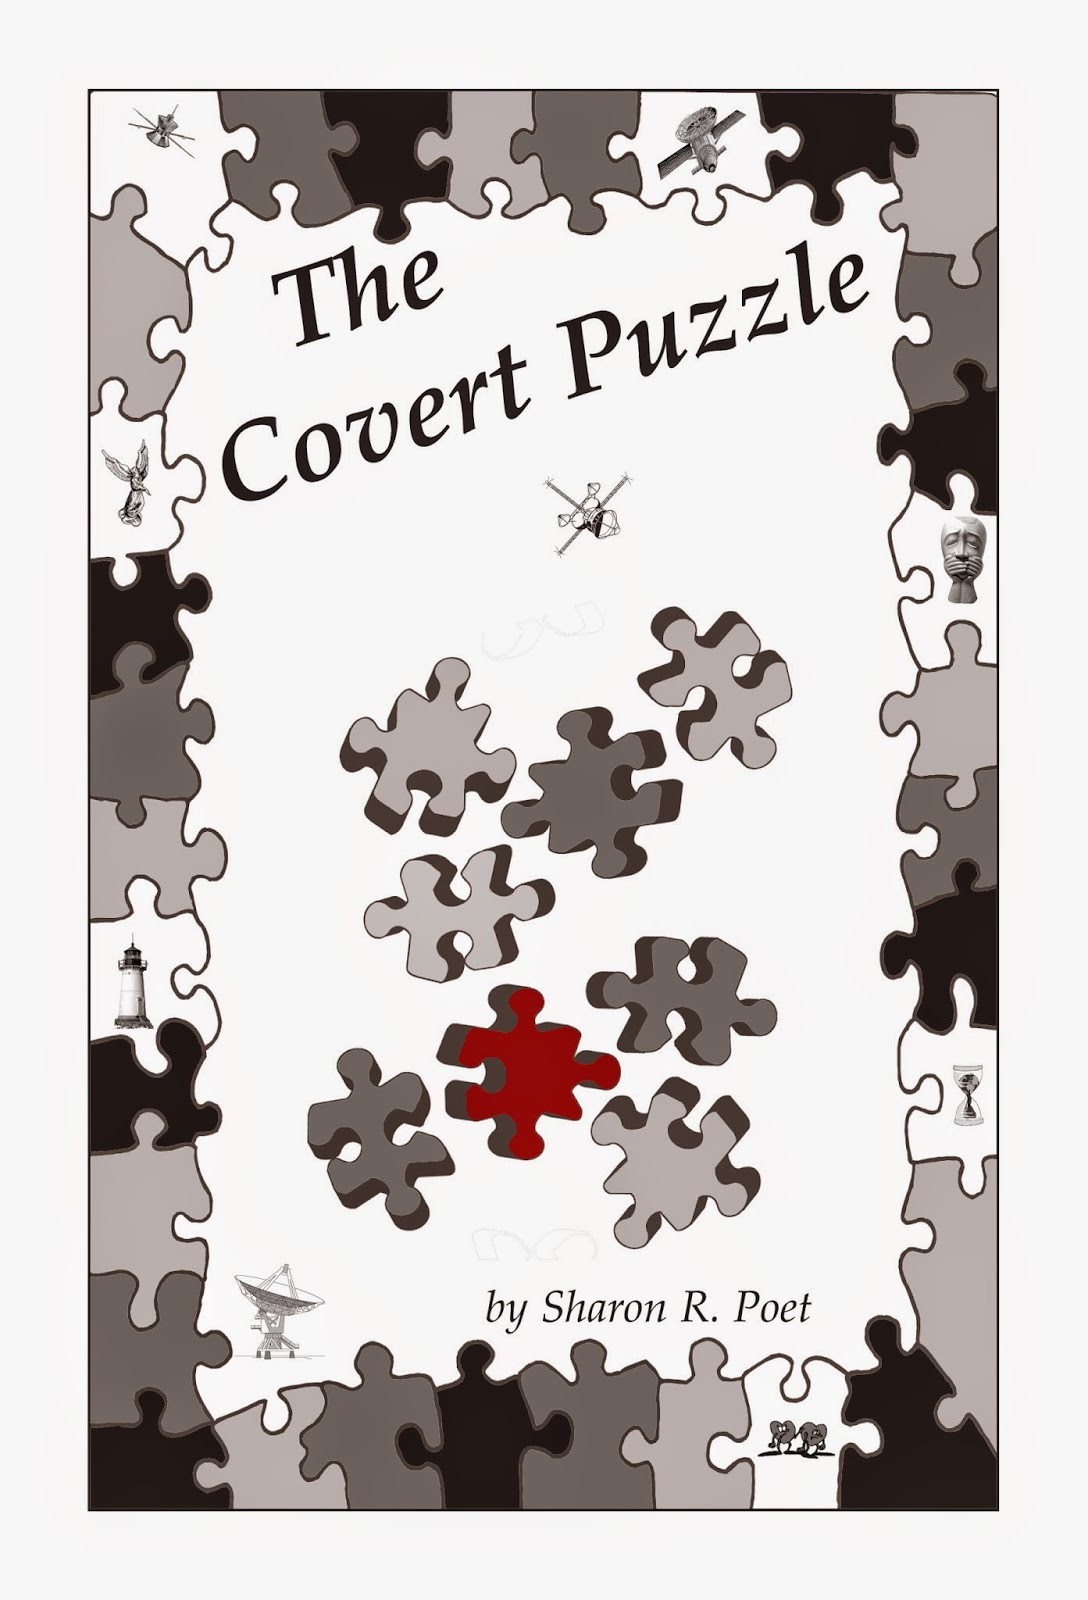 The Covert Puzzle book